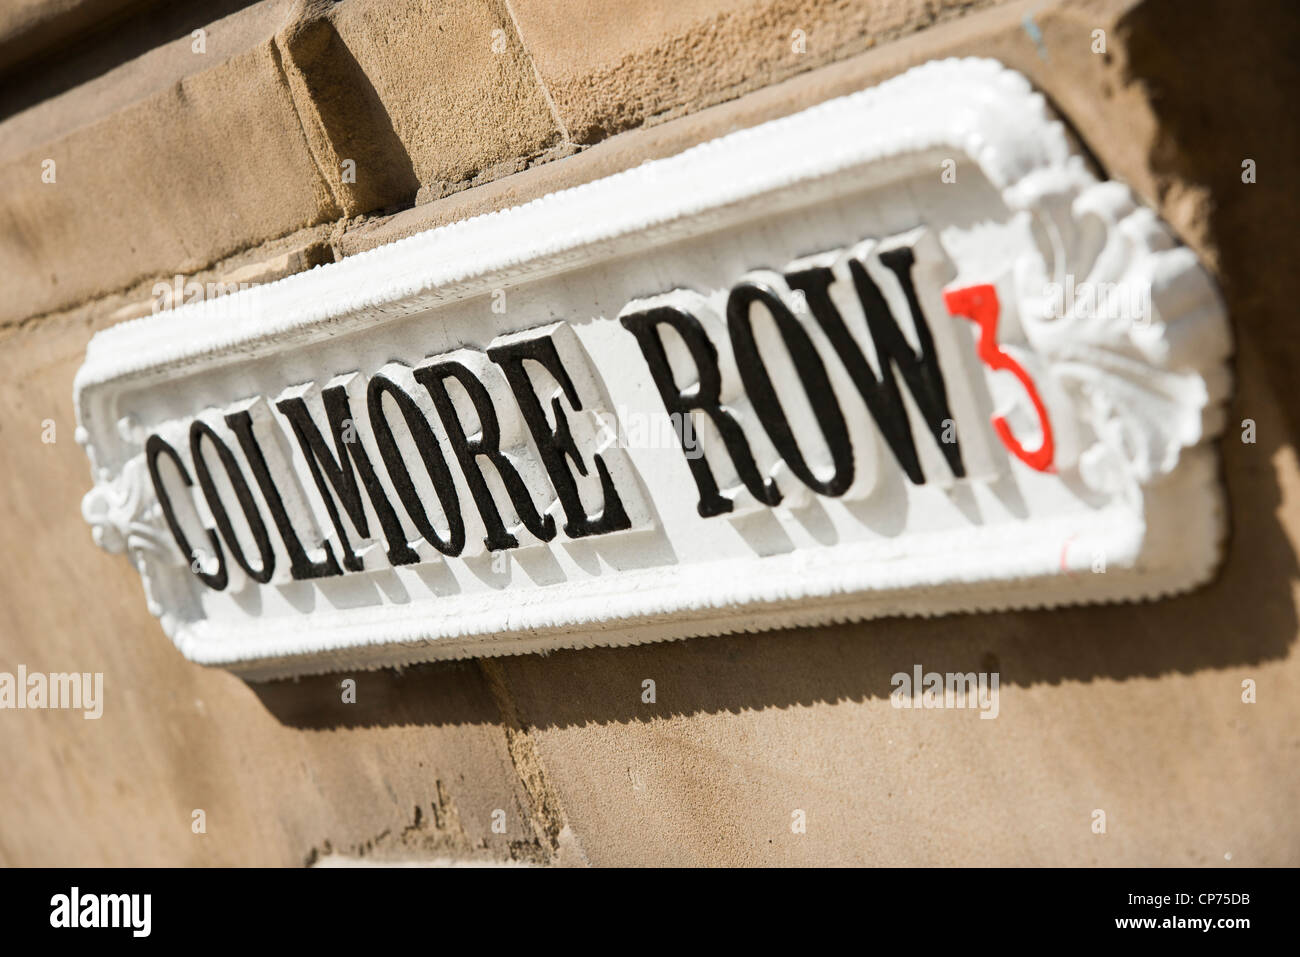 Colmore Row street sign, Birmingham city centre, West Midlands, England. - Stock Image